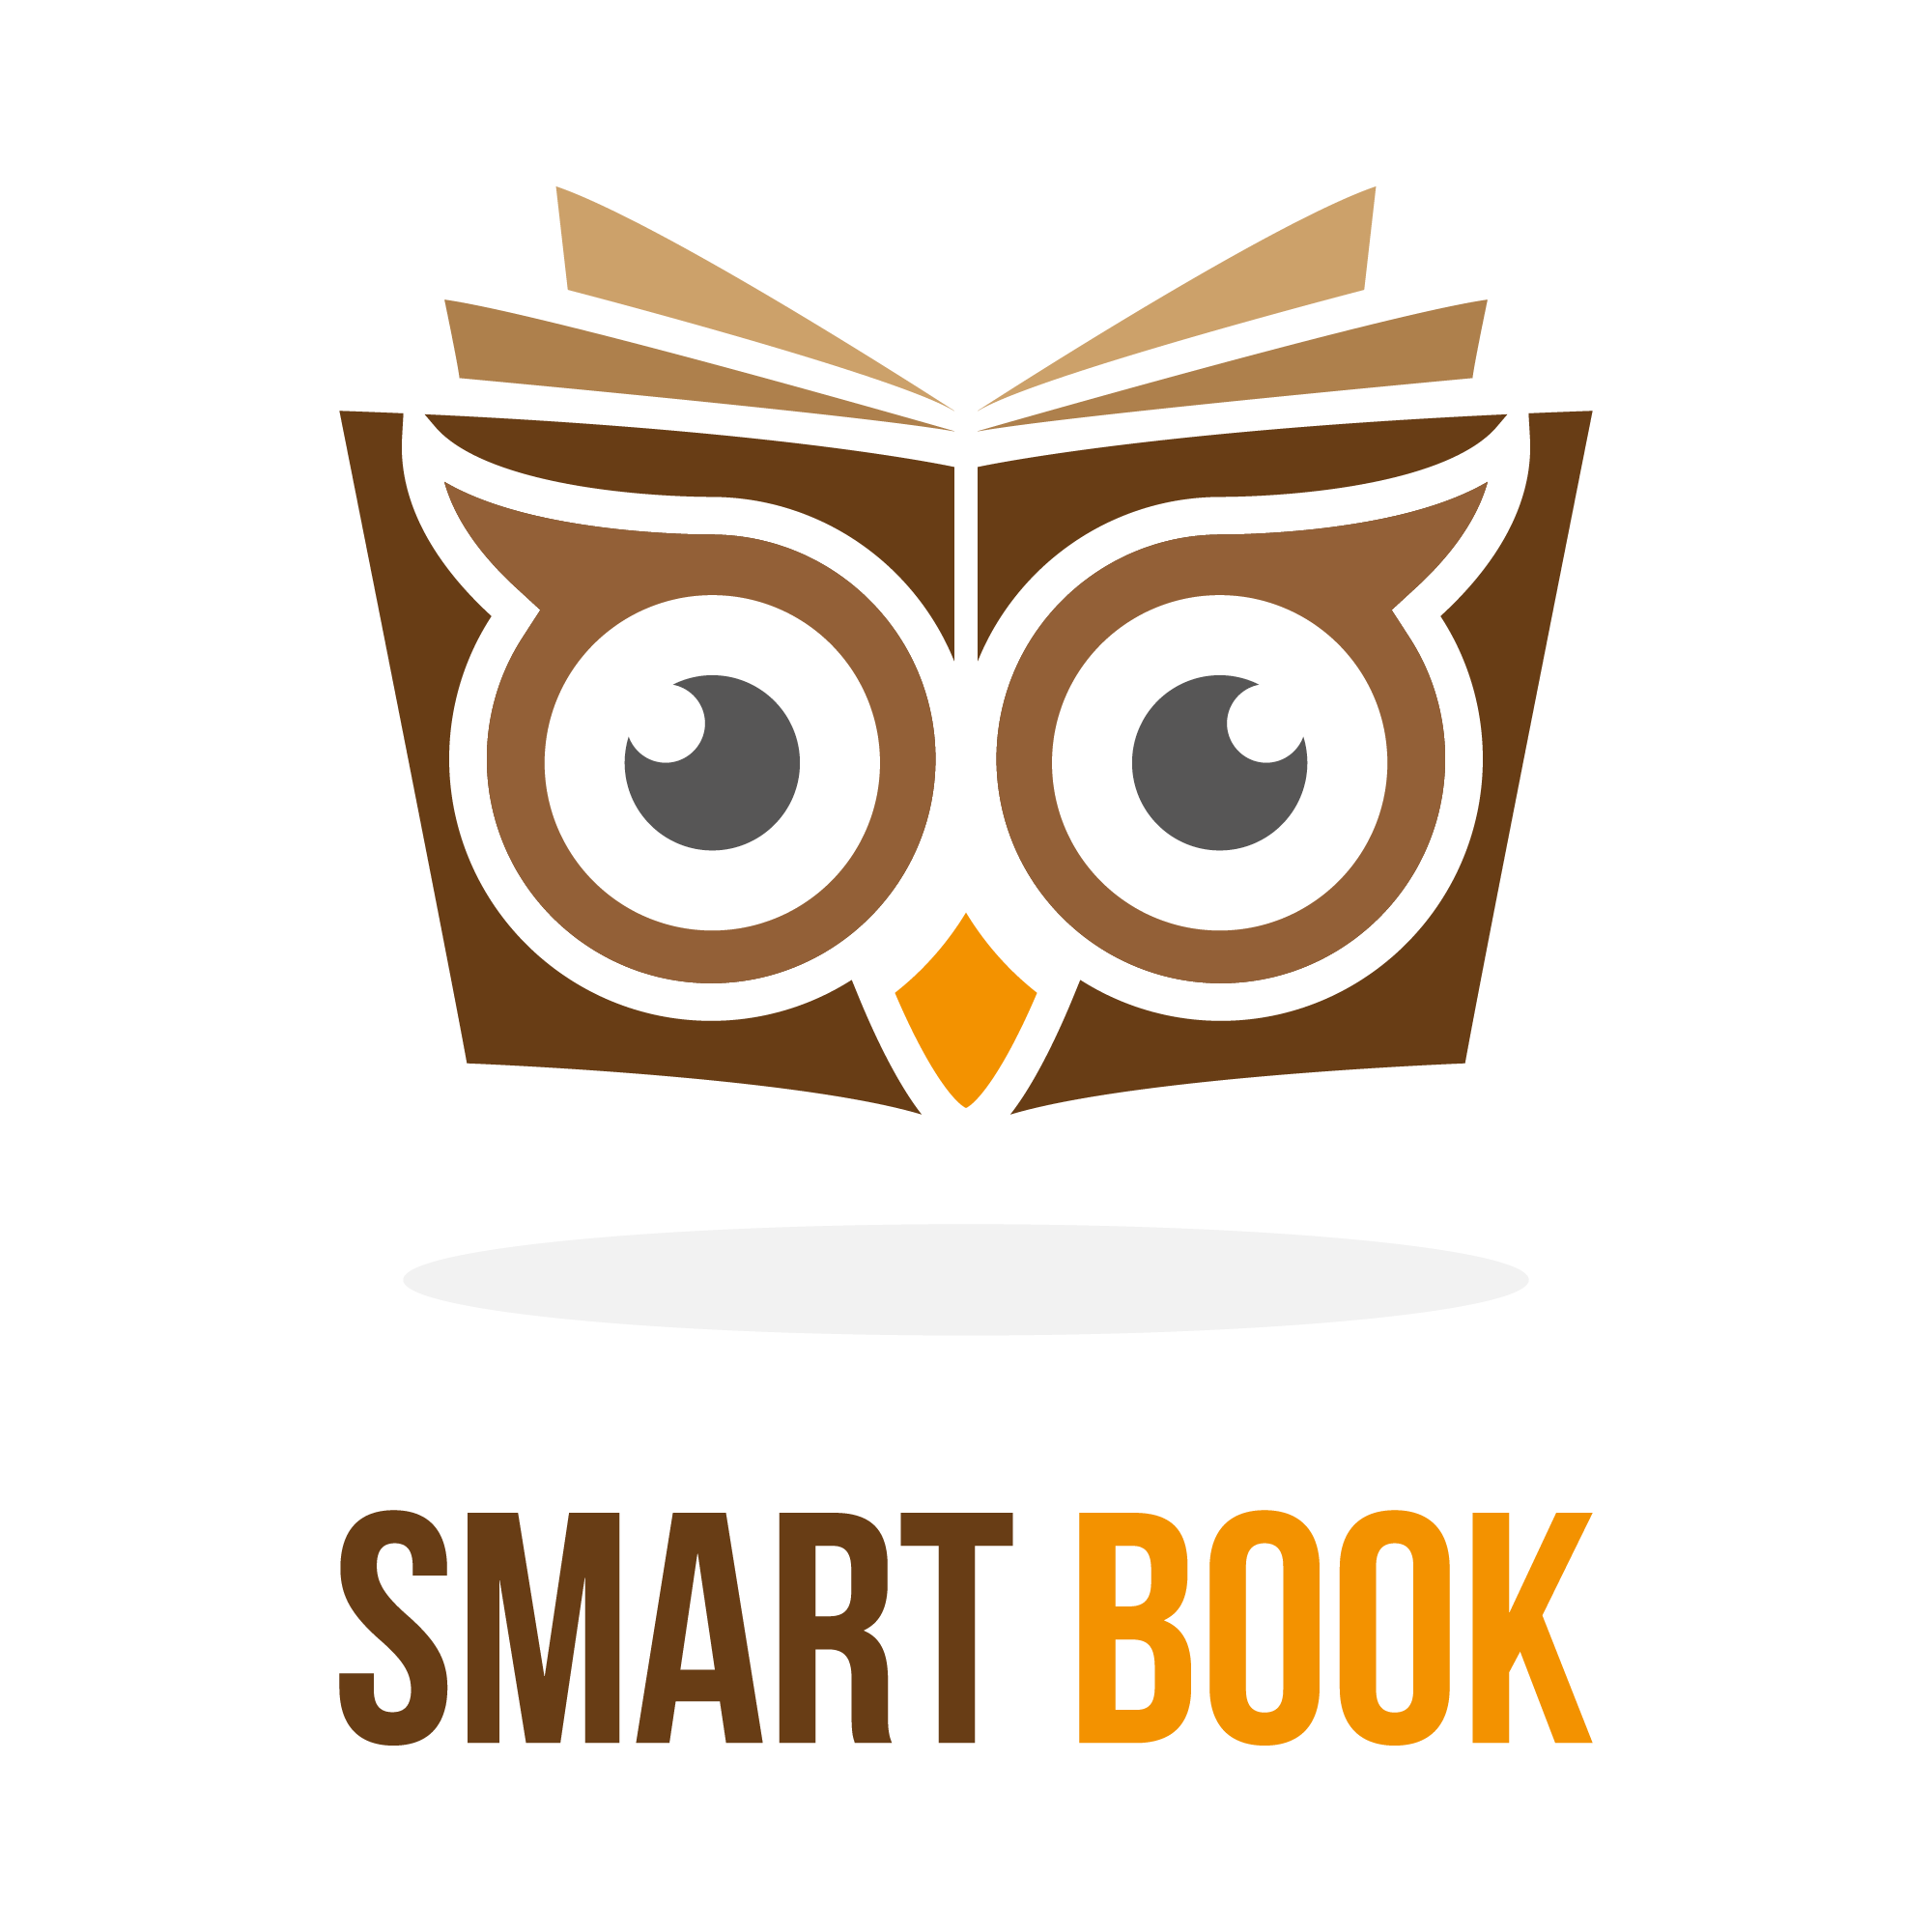 Book brands of the. Smart clipart smart owl